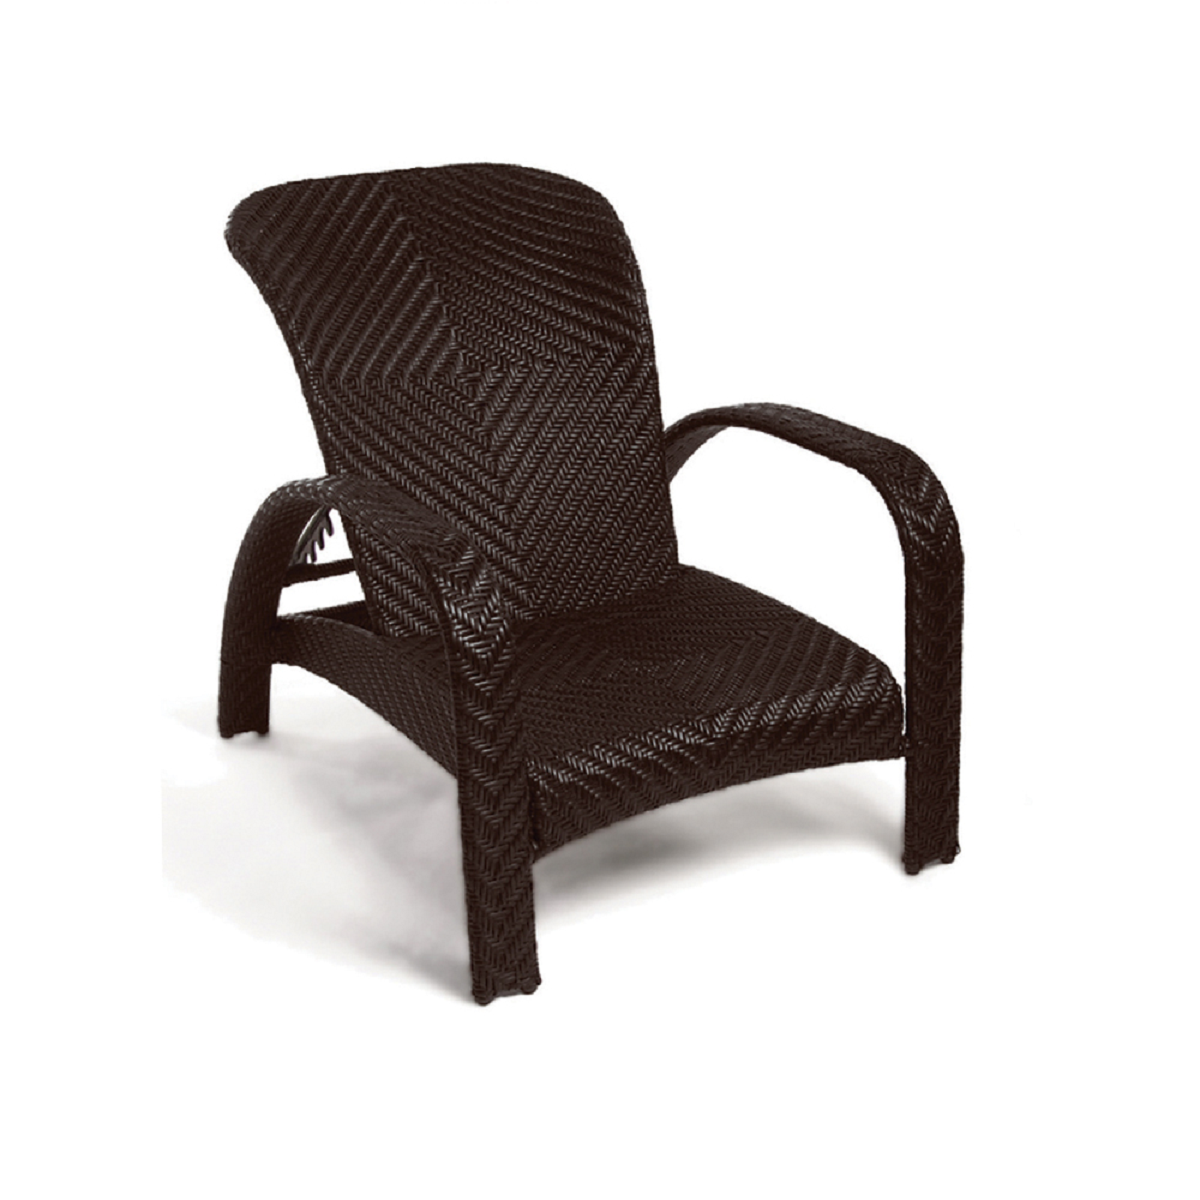 Plantation Wicker Leisure Chair